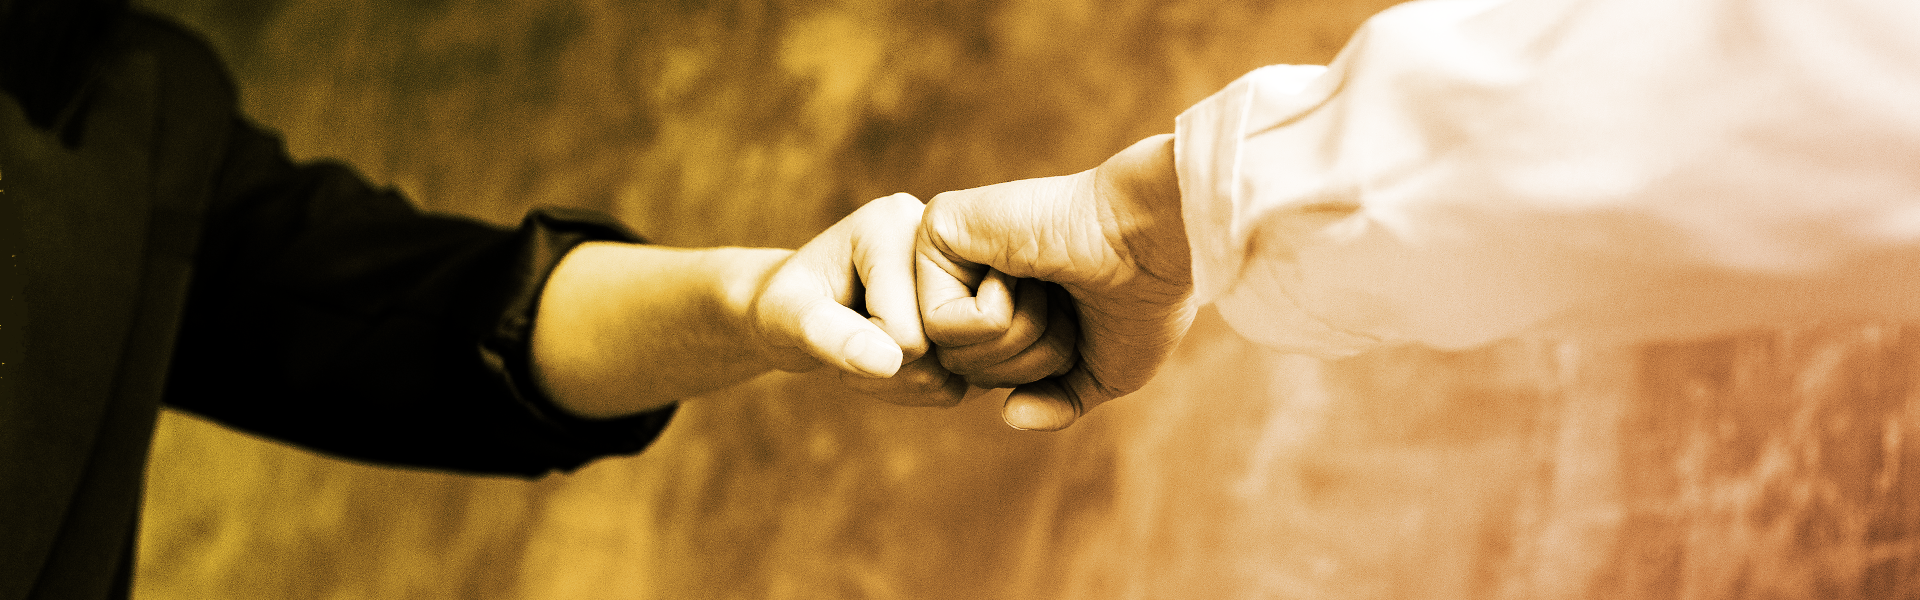 Stock image showing two peoples arms and fist bumping as a greeting